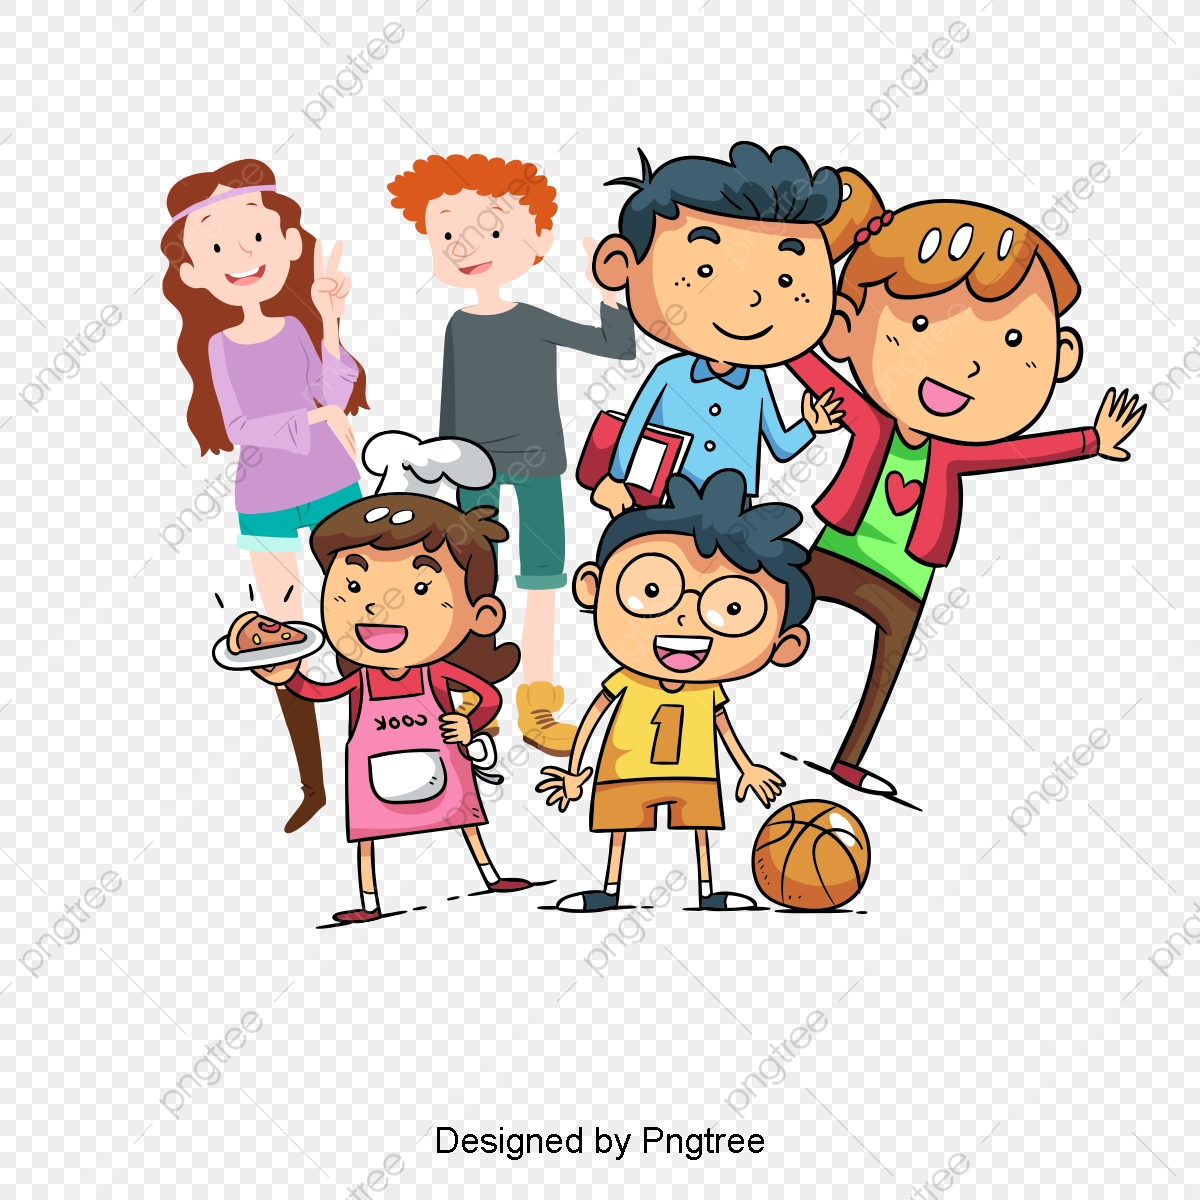 Creative Kids Holiday, Kids Clipart, Child, Creative Holiday PNG